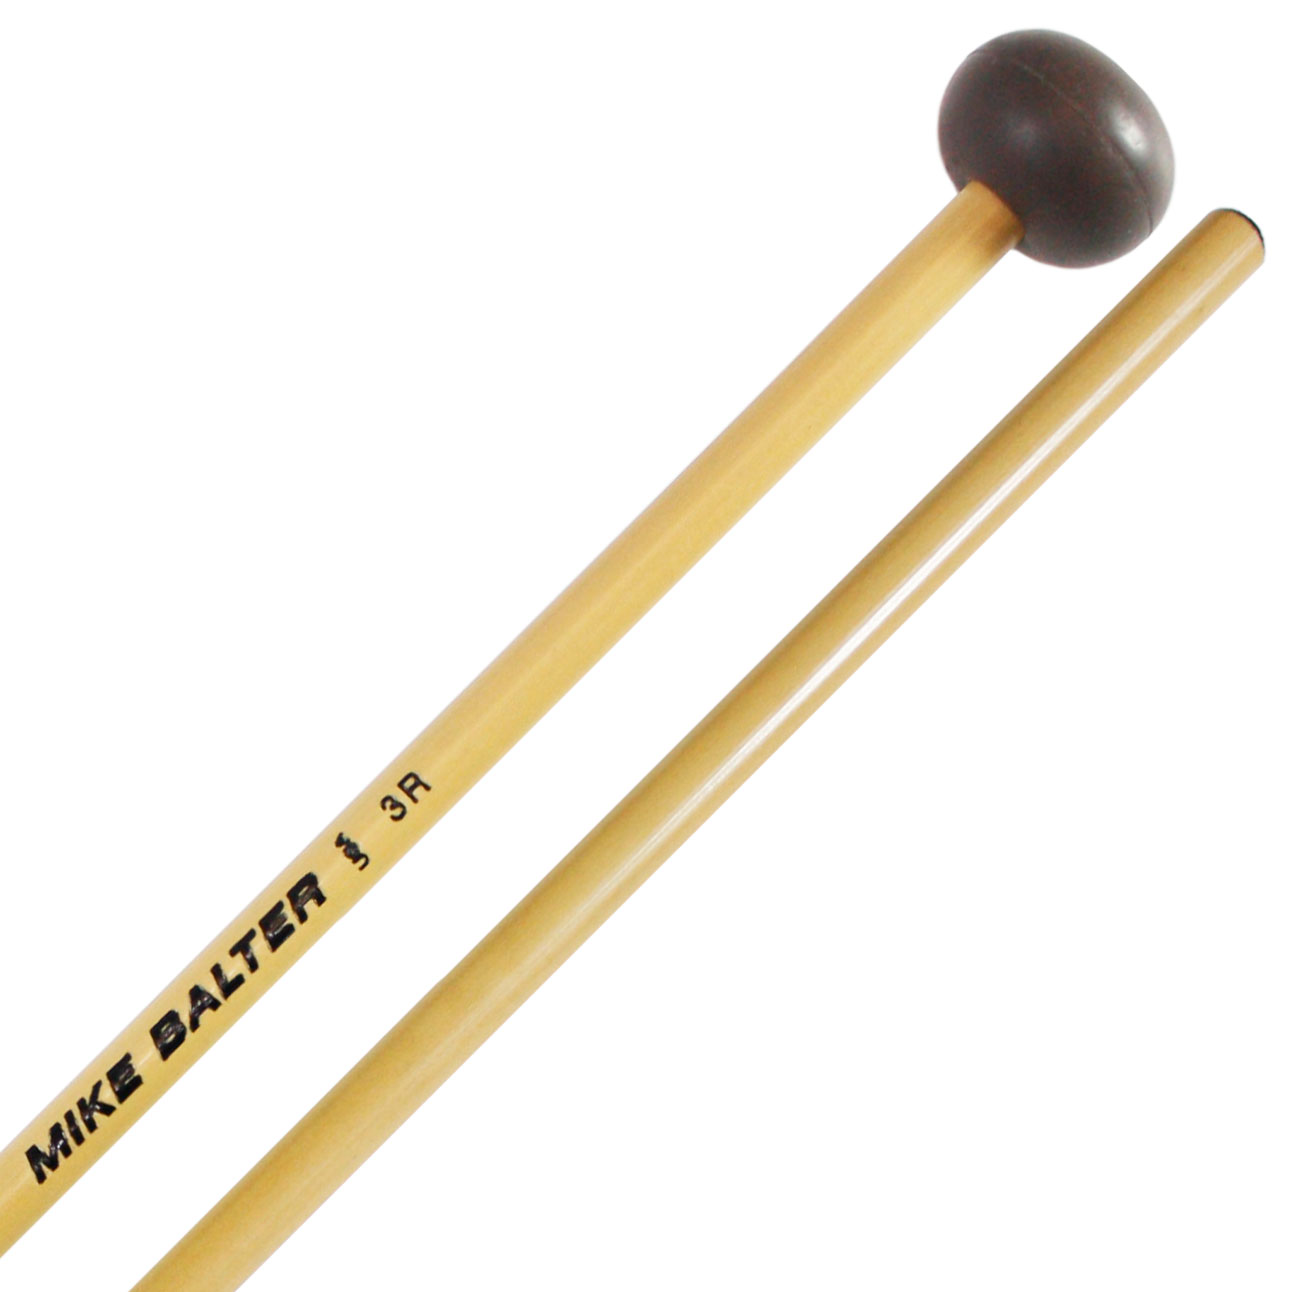 Mike Balter Unwound Medium Soft Rubber Xylophone Mallets with Rattan Handles